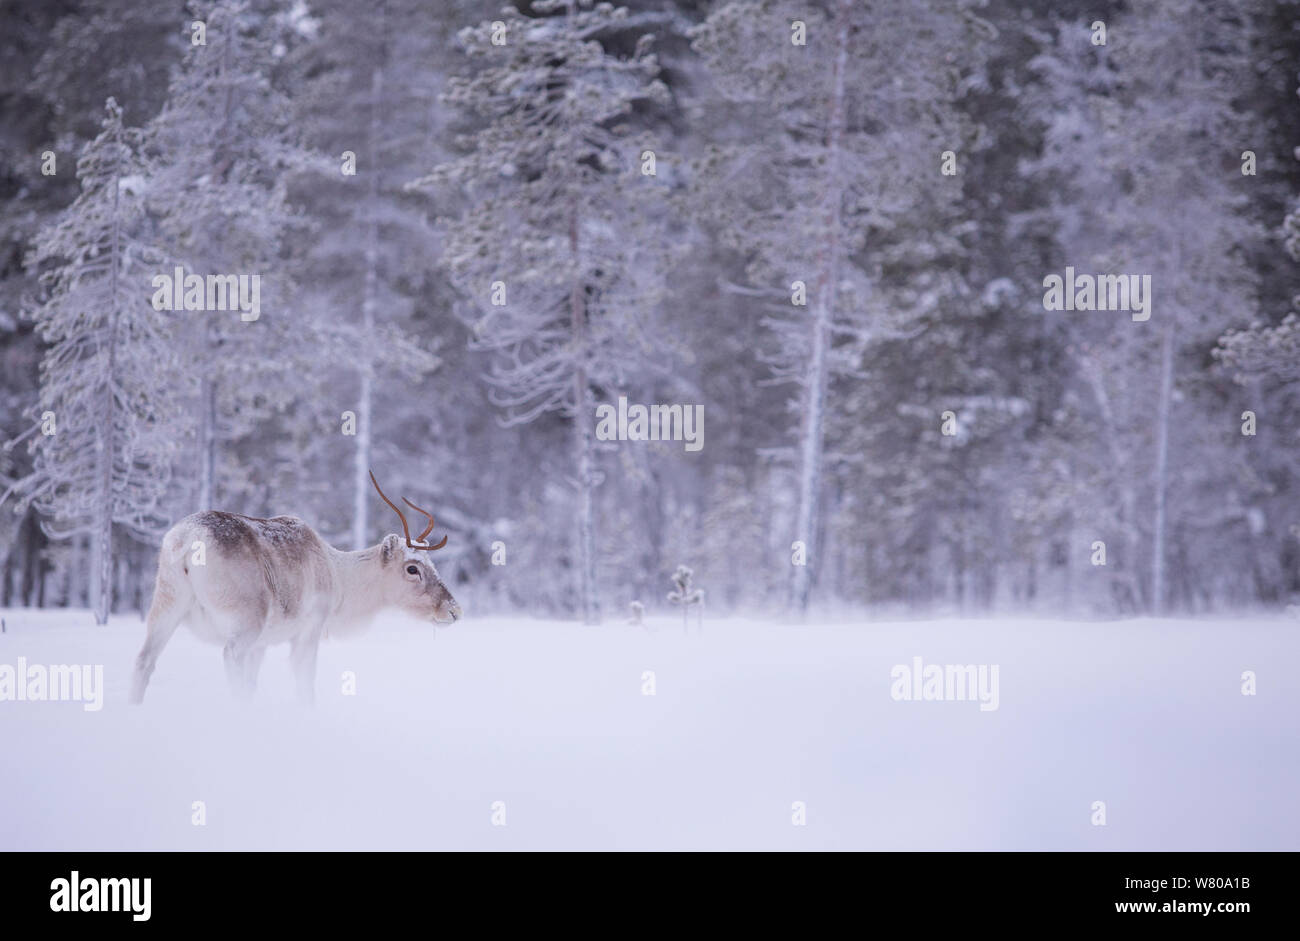 Reindeer (Rangifer tarandus) in snowy forest, Finland, January. Stock Photo